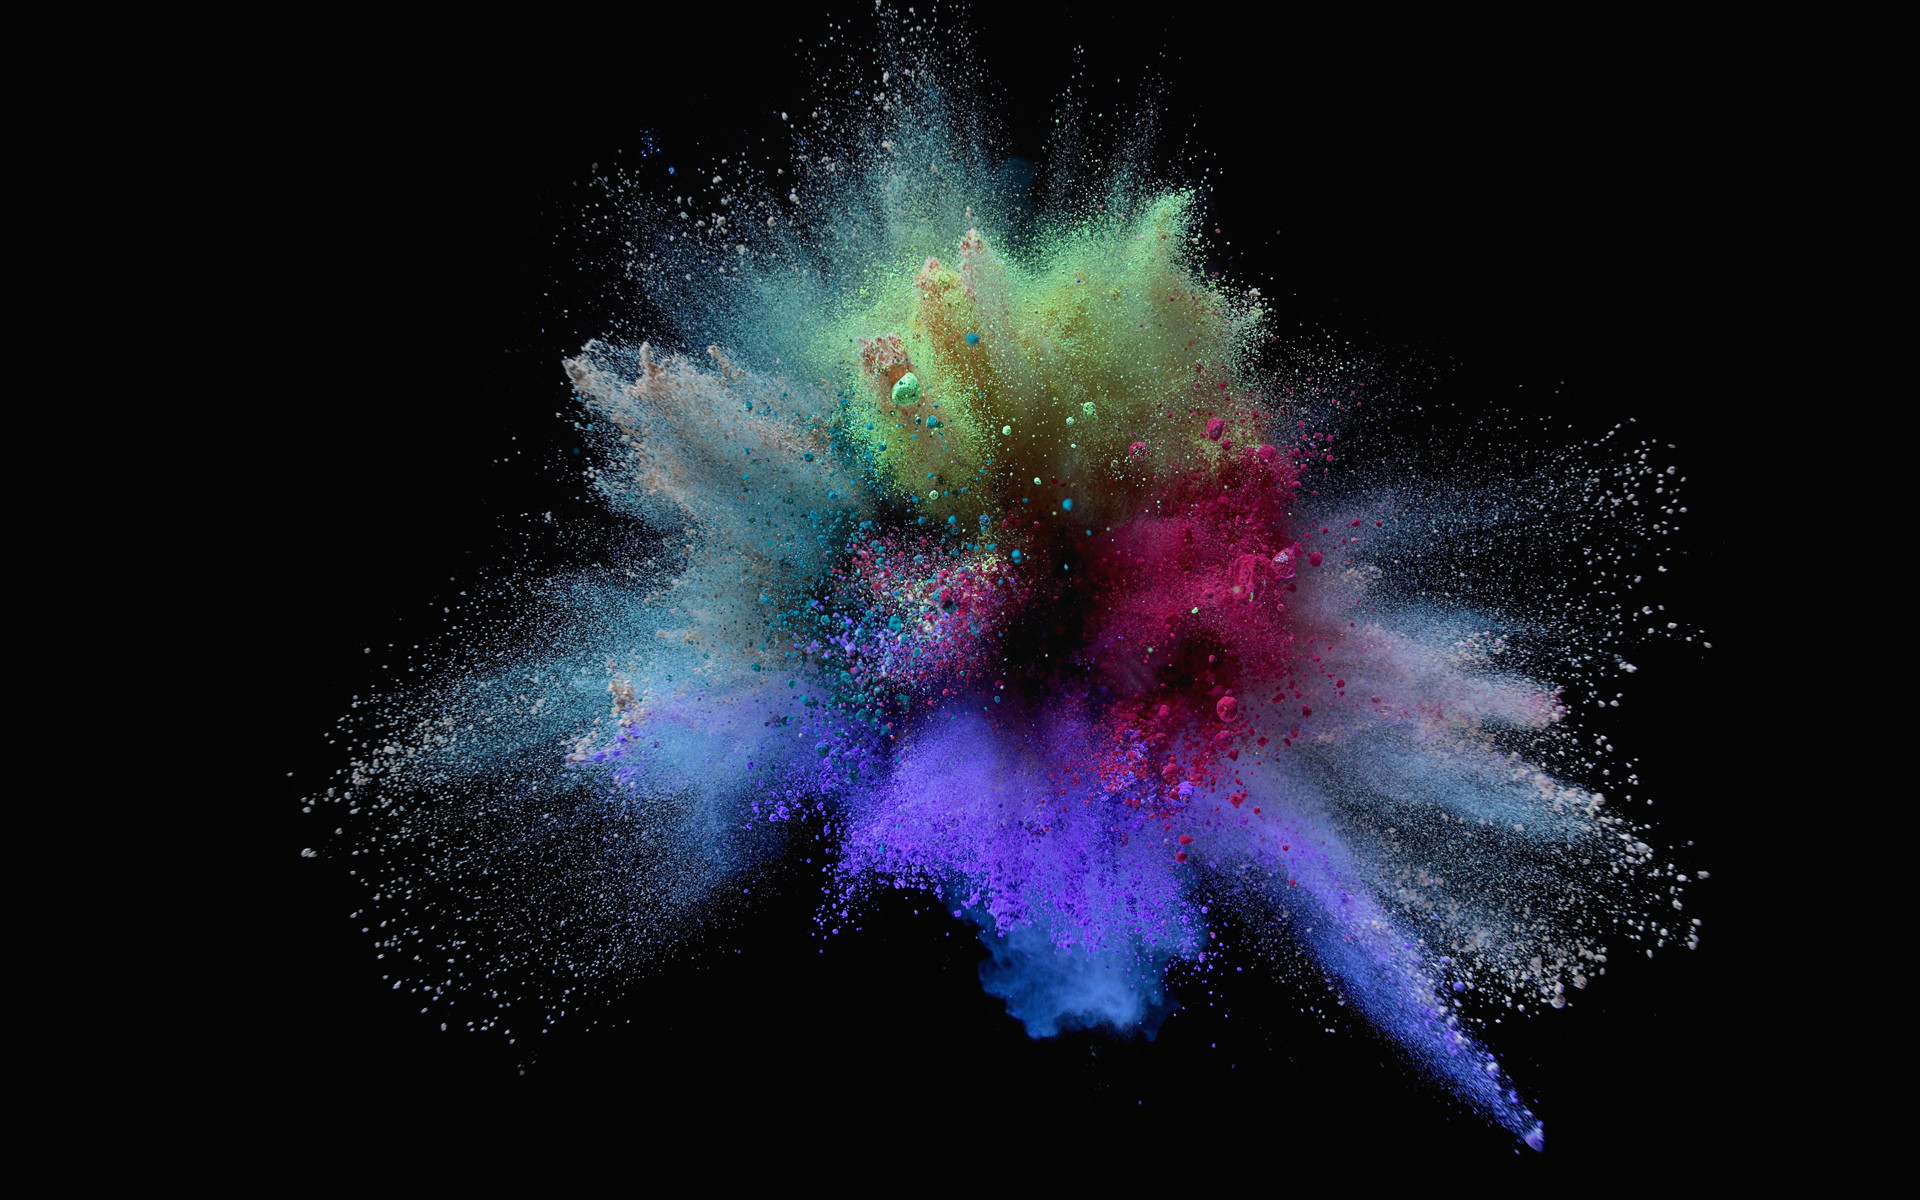 Explosion of colorful sand on black background HD Wallpaper (1920×1200)